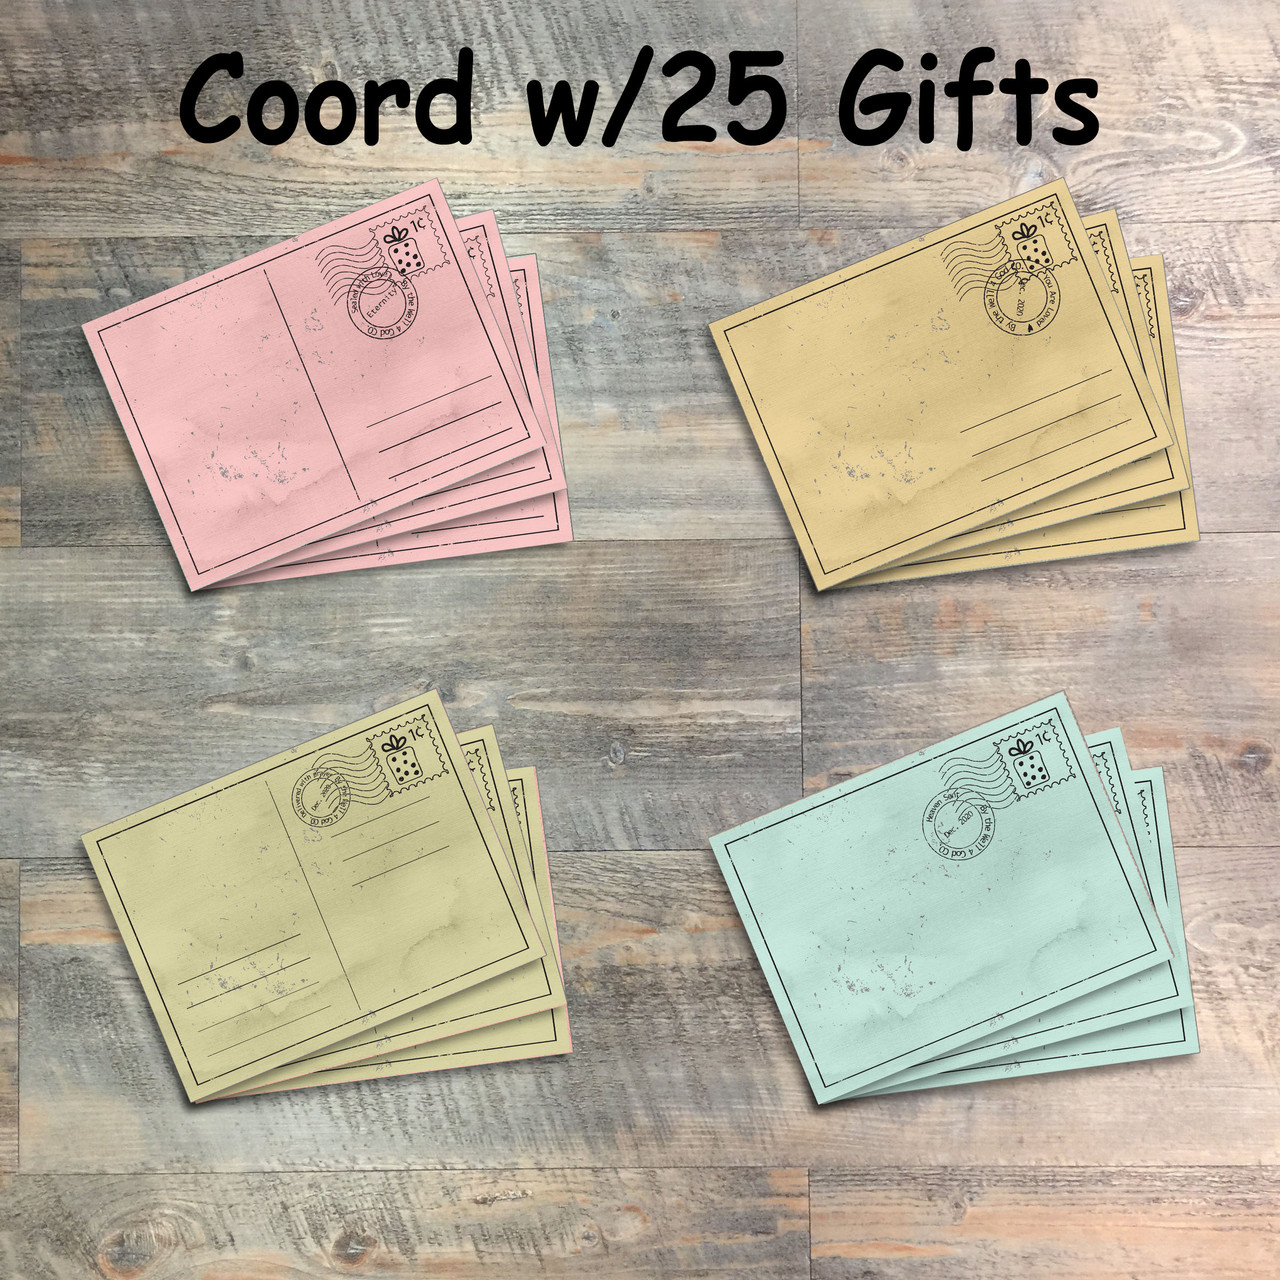 25 Gifts of Love Postcard Journaling Cards - 12 3x4 Cards in Colors to Match Kit